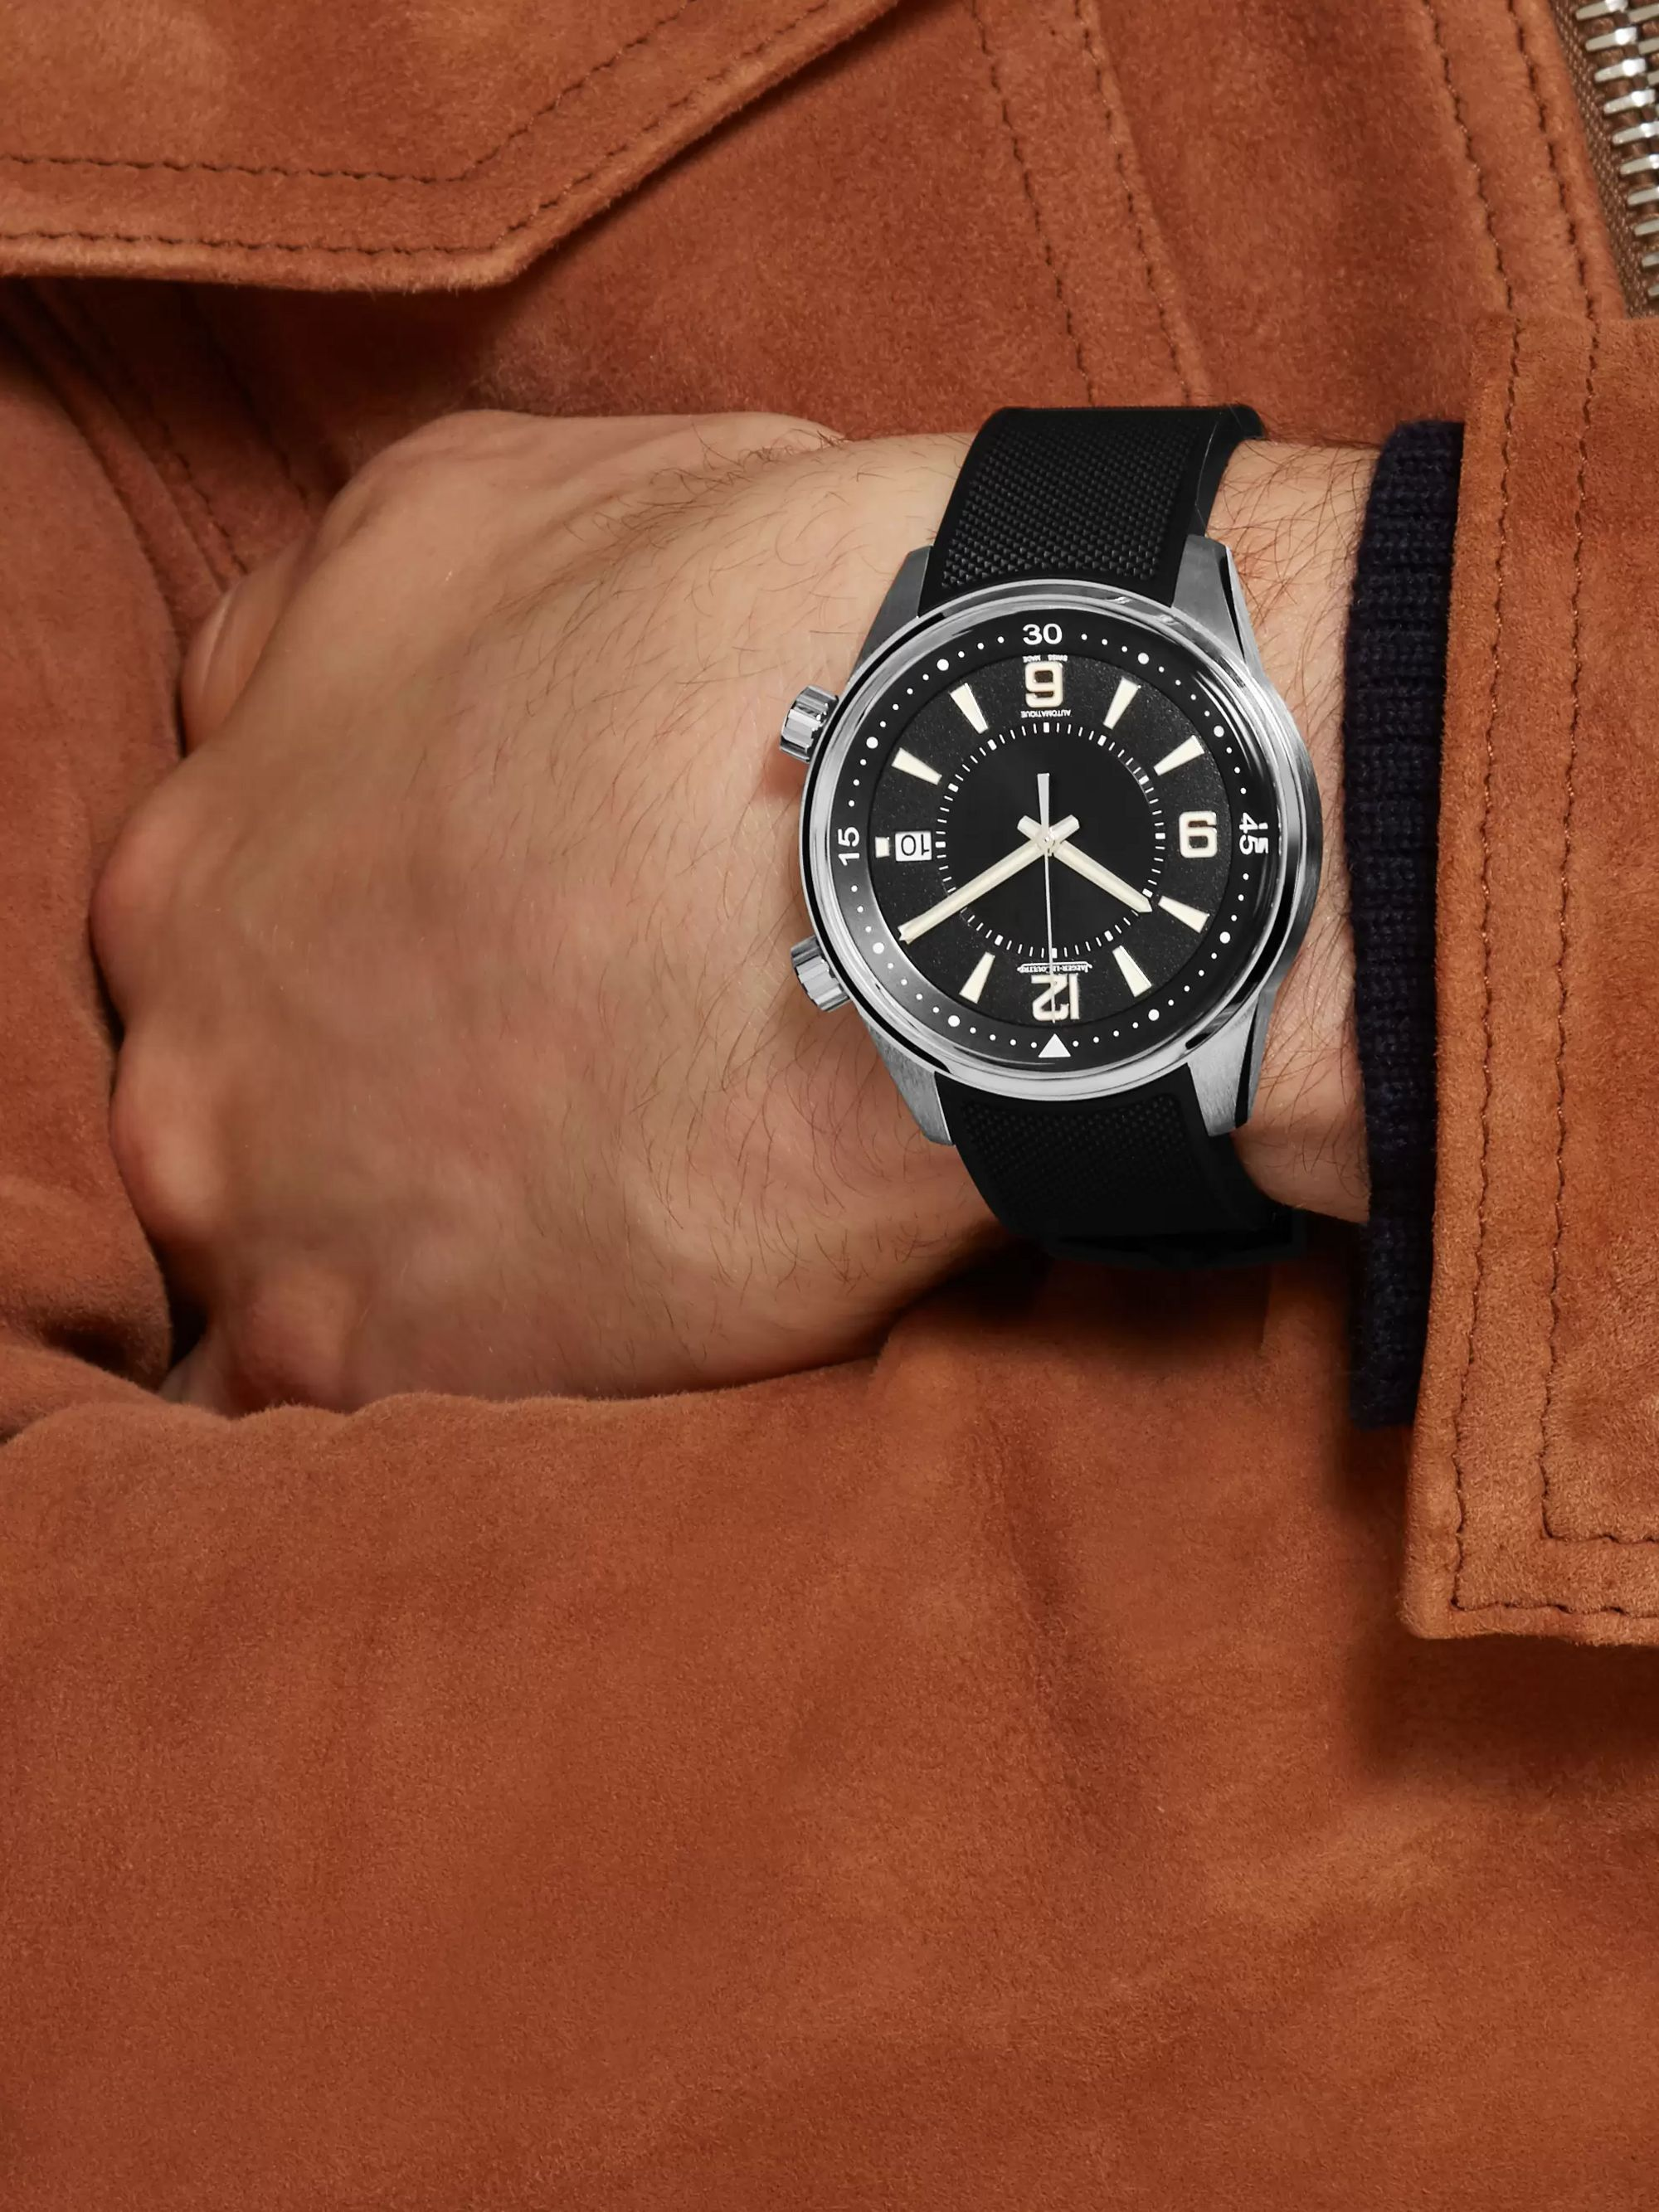 Jaeger-LeCoultre Polaris Date 42mm Stainless Steel and Rubber Watch